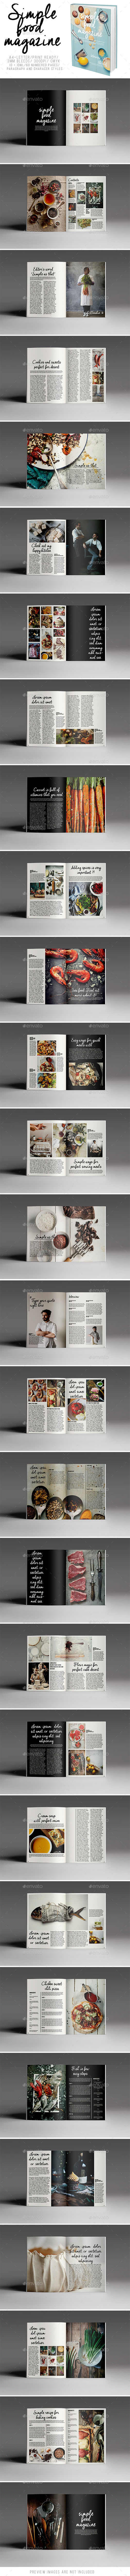 GraphicRiver Simple Food Magazine 10251408